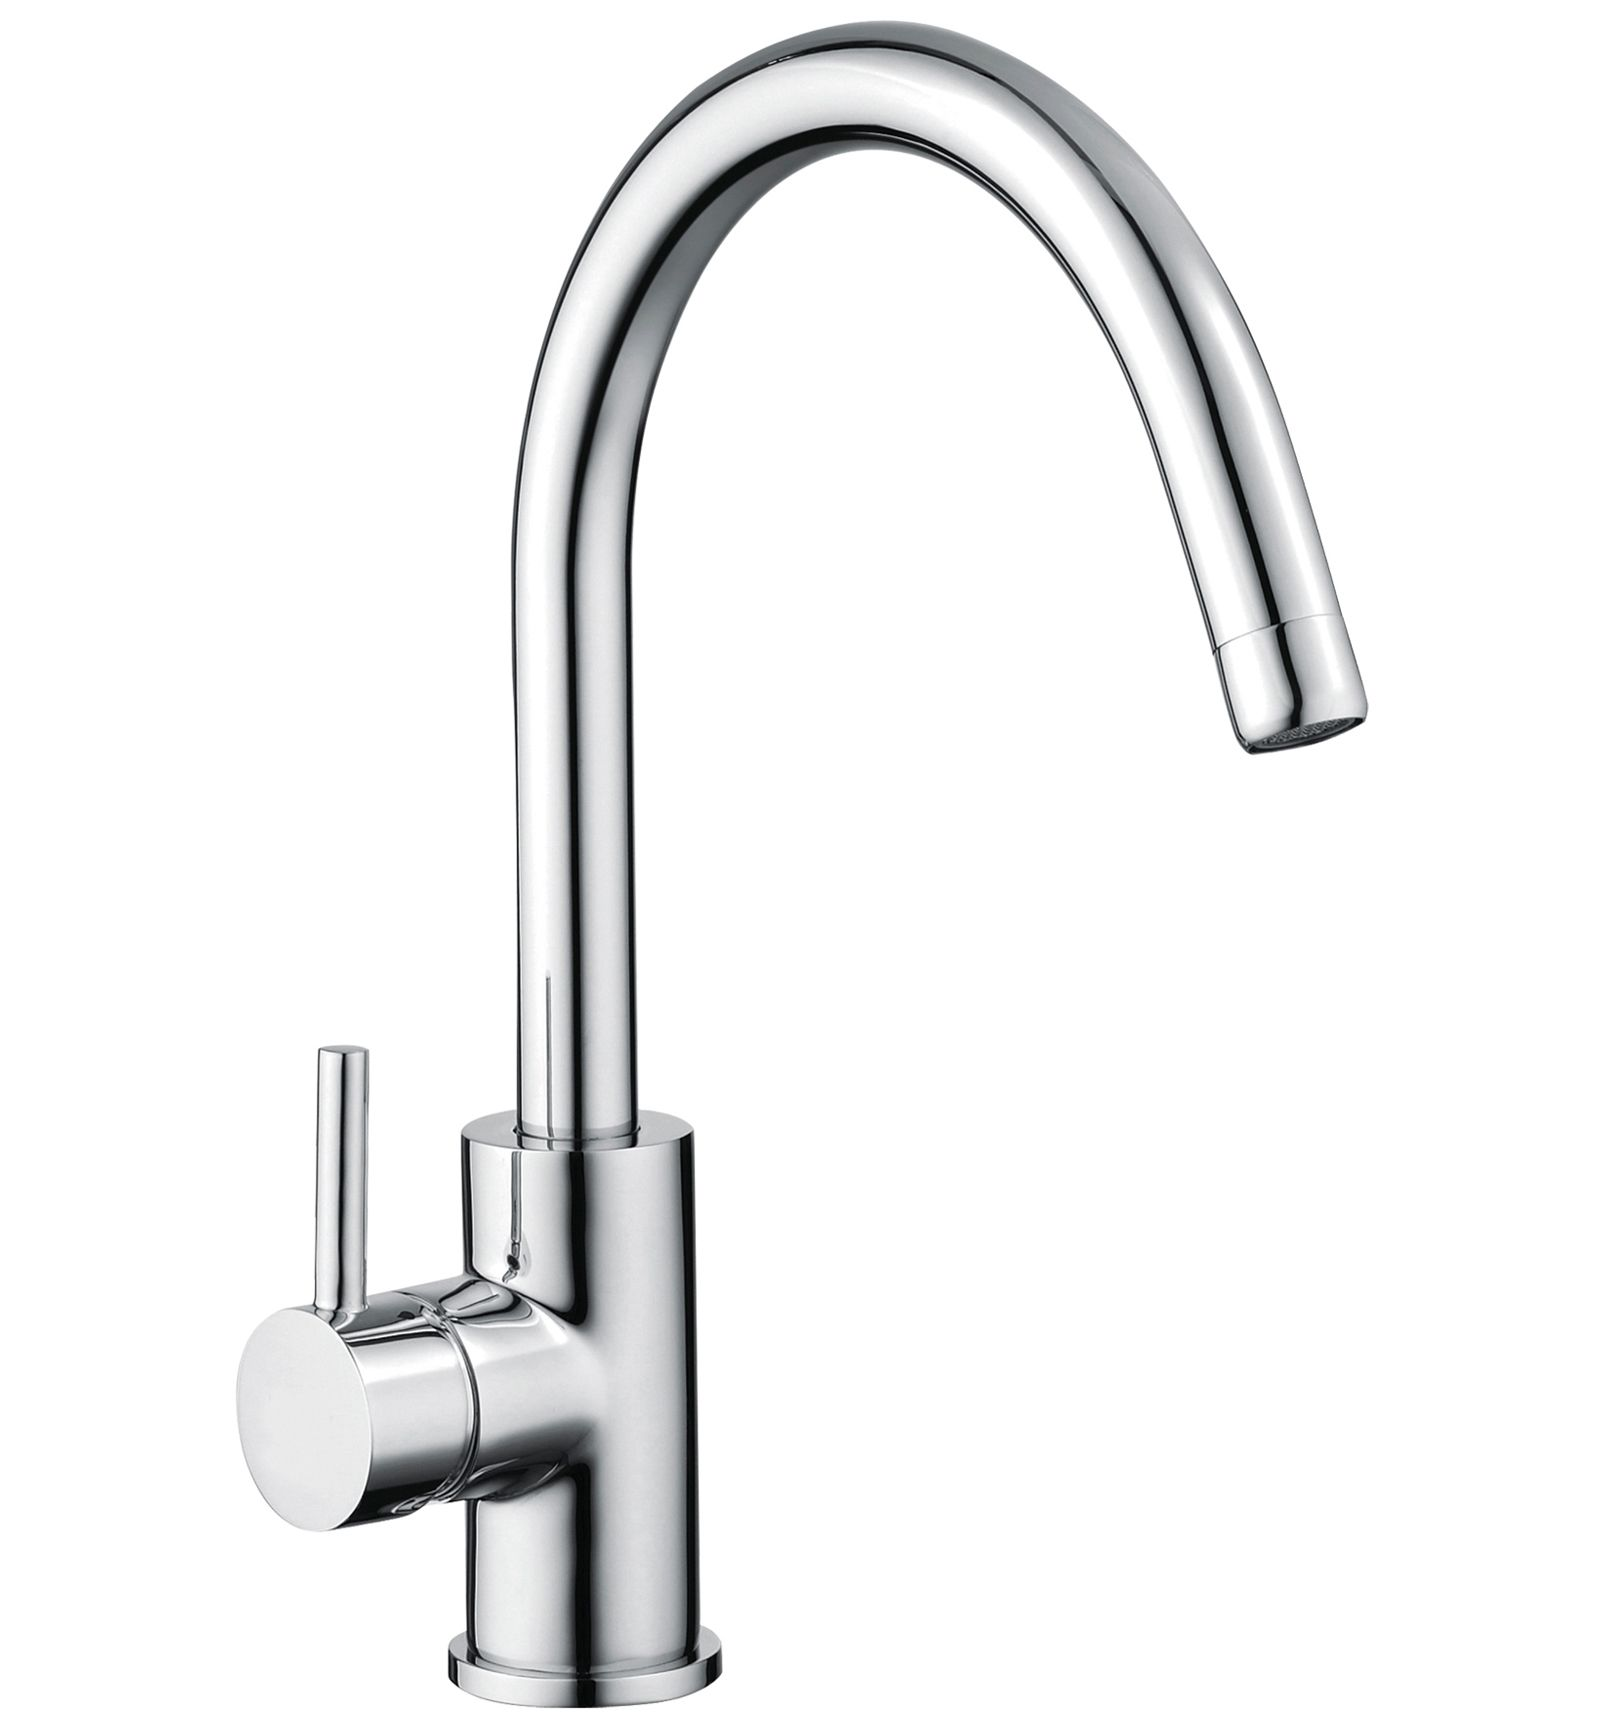 sagittarius ergo side lever monobloc kitchen sink mixer tap sink